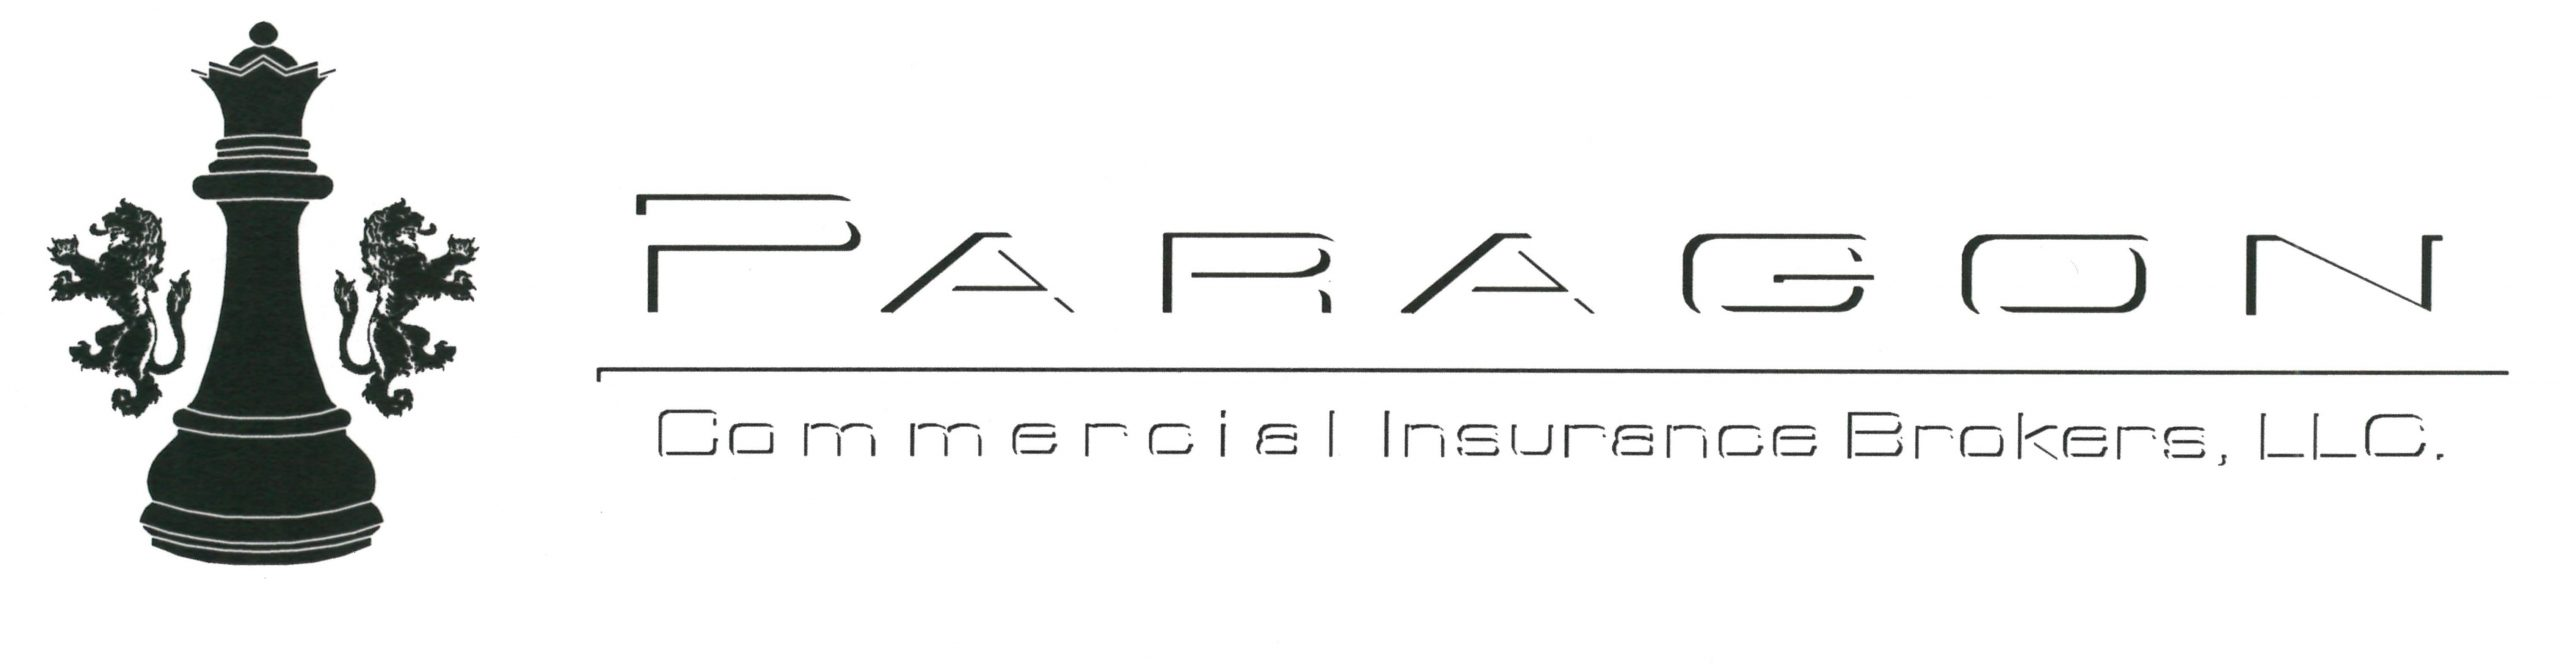 Paragon Commercial Insurance Brokers